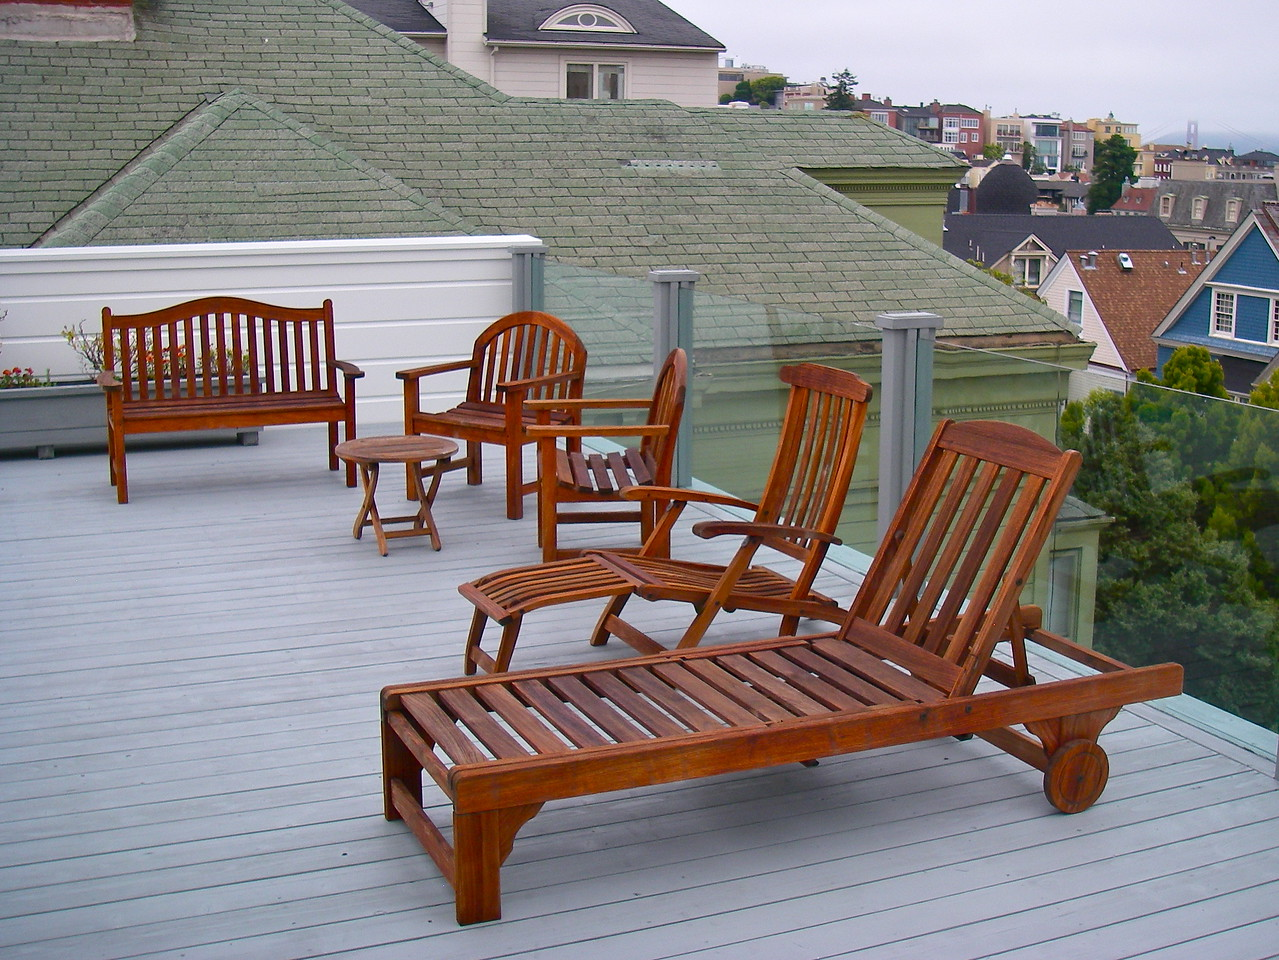 Teak deck furniture has been restored to former glory.